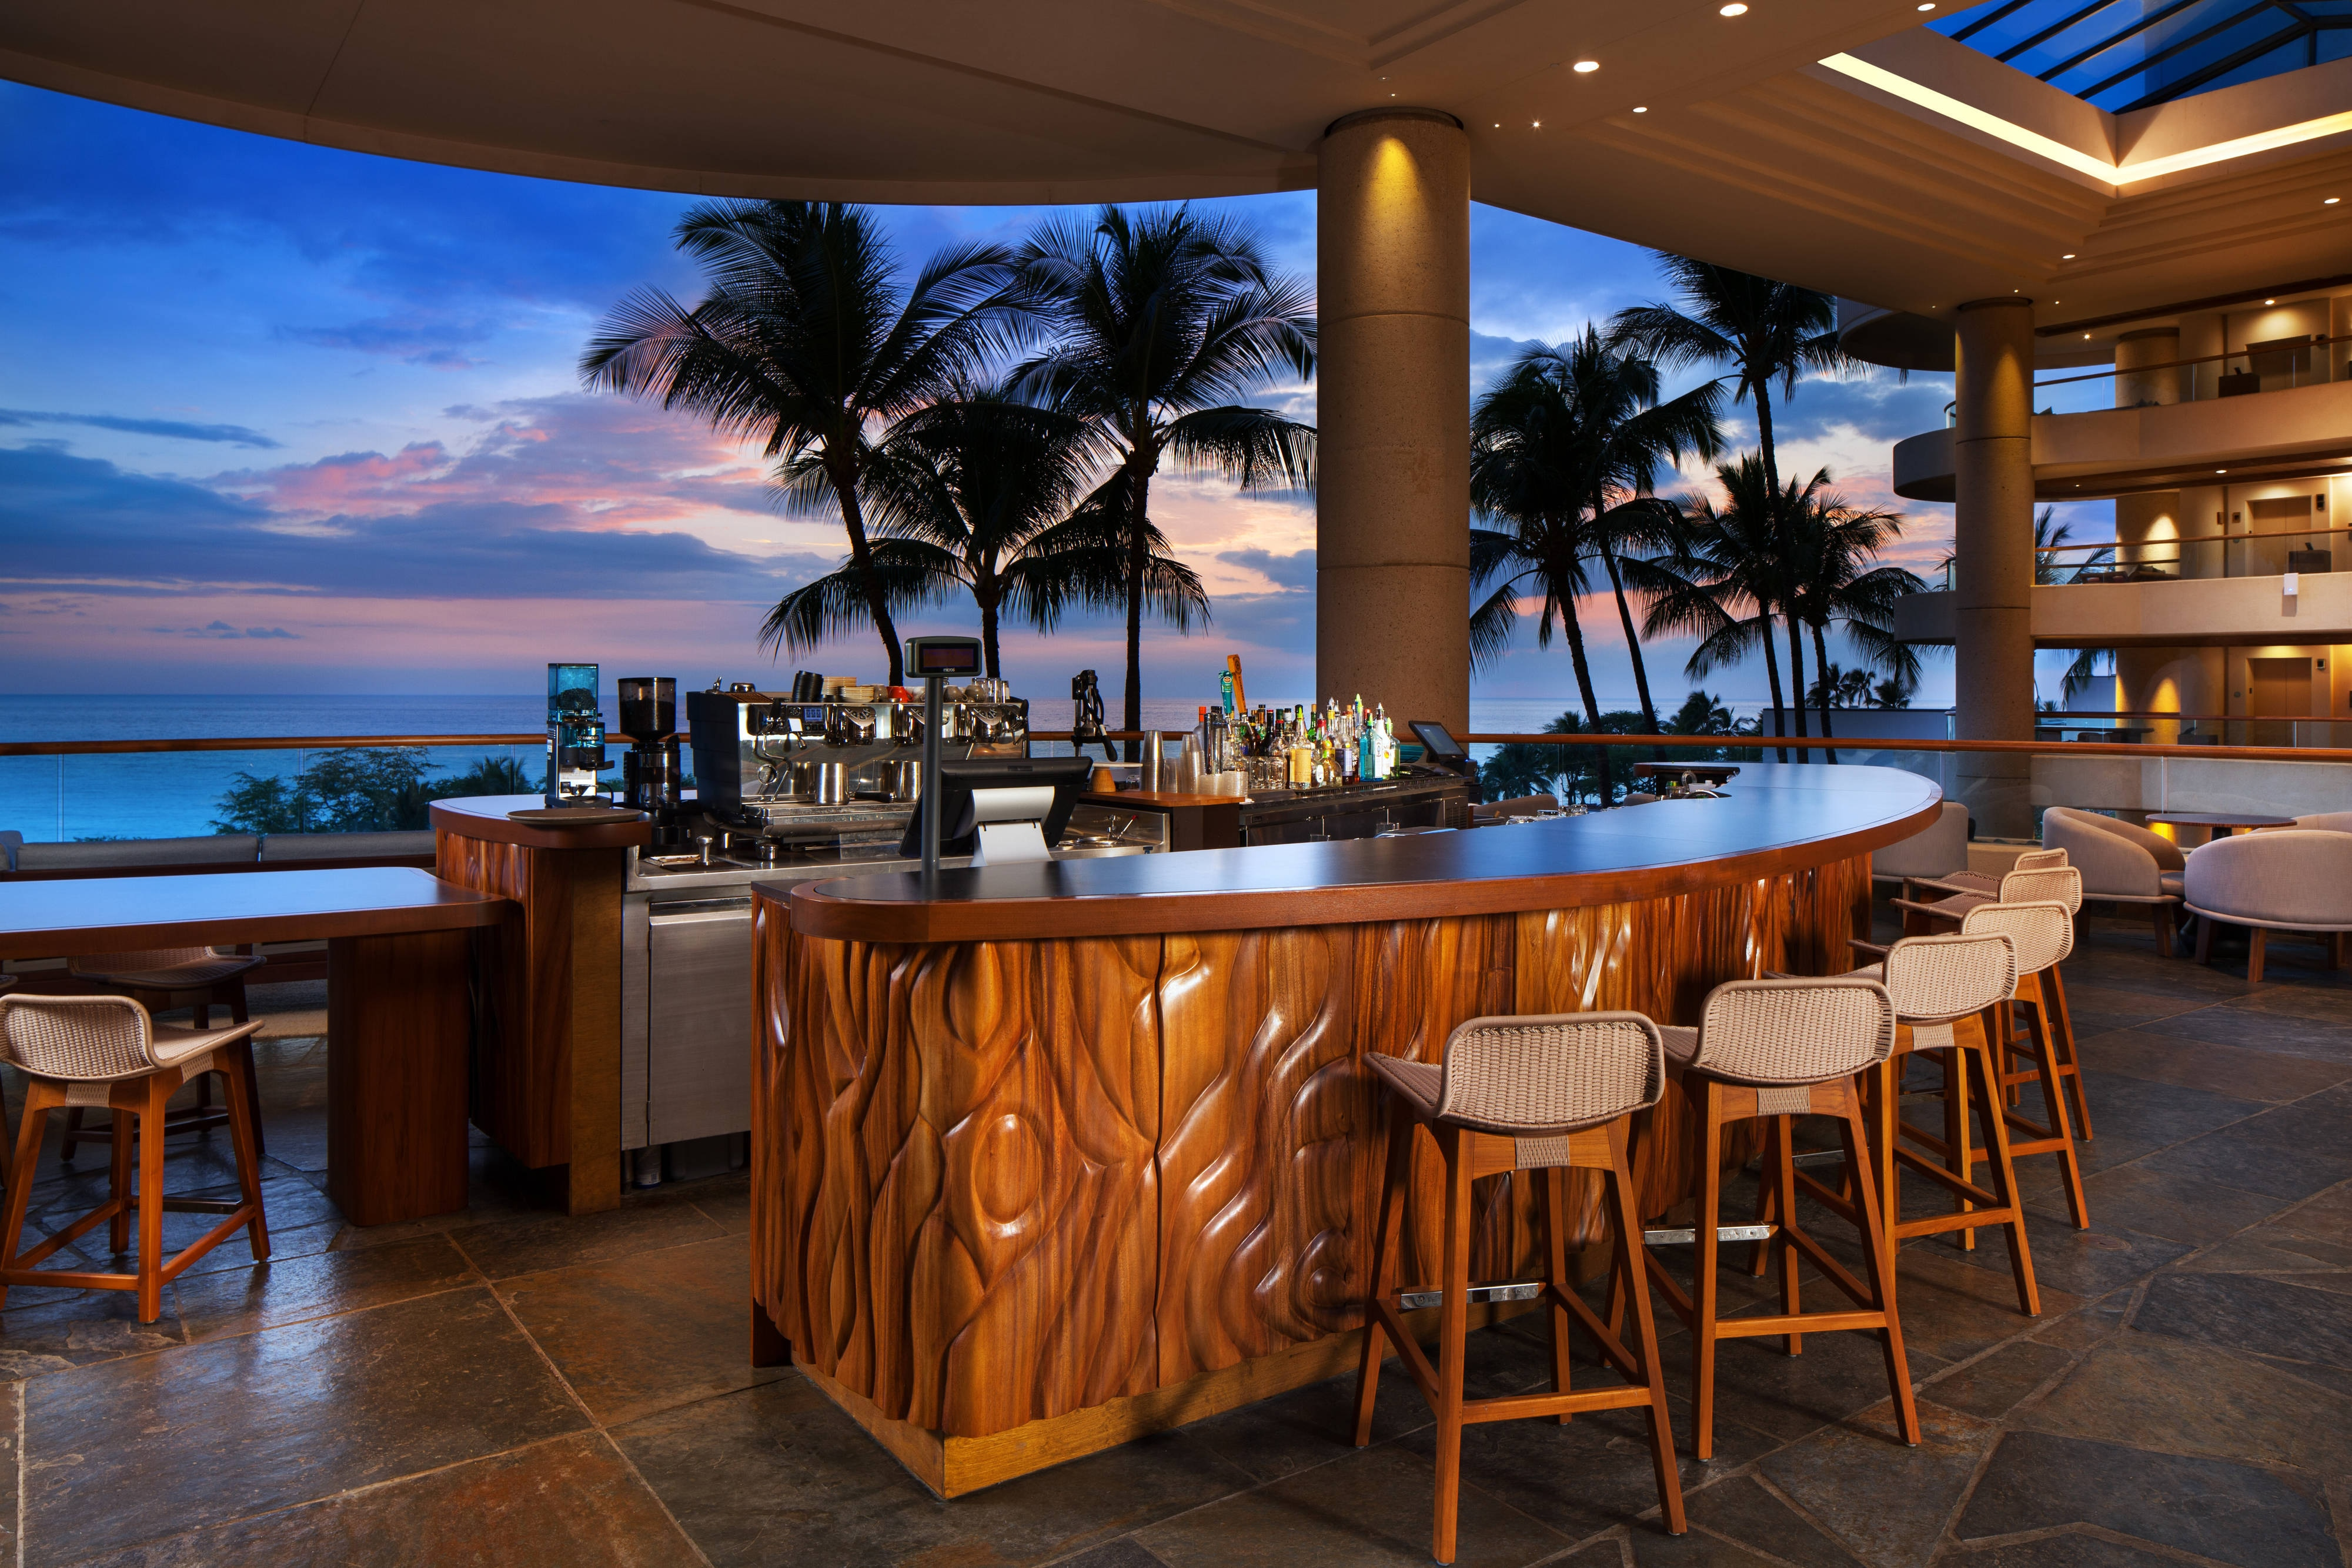 Hapuna Beach Hotel Restaurants The Westin Hapuna Beach Resort